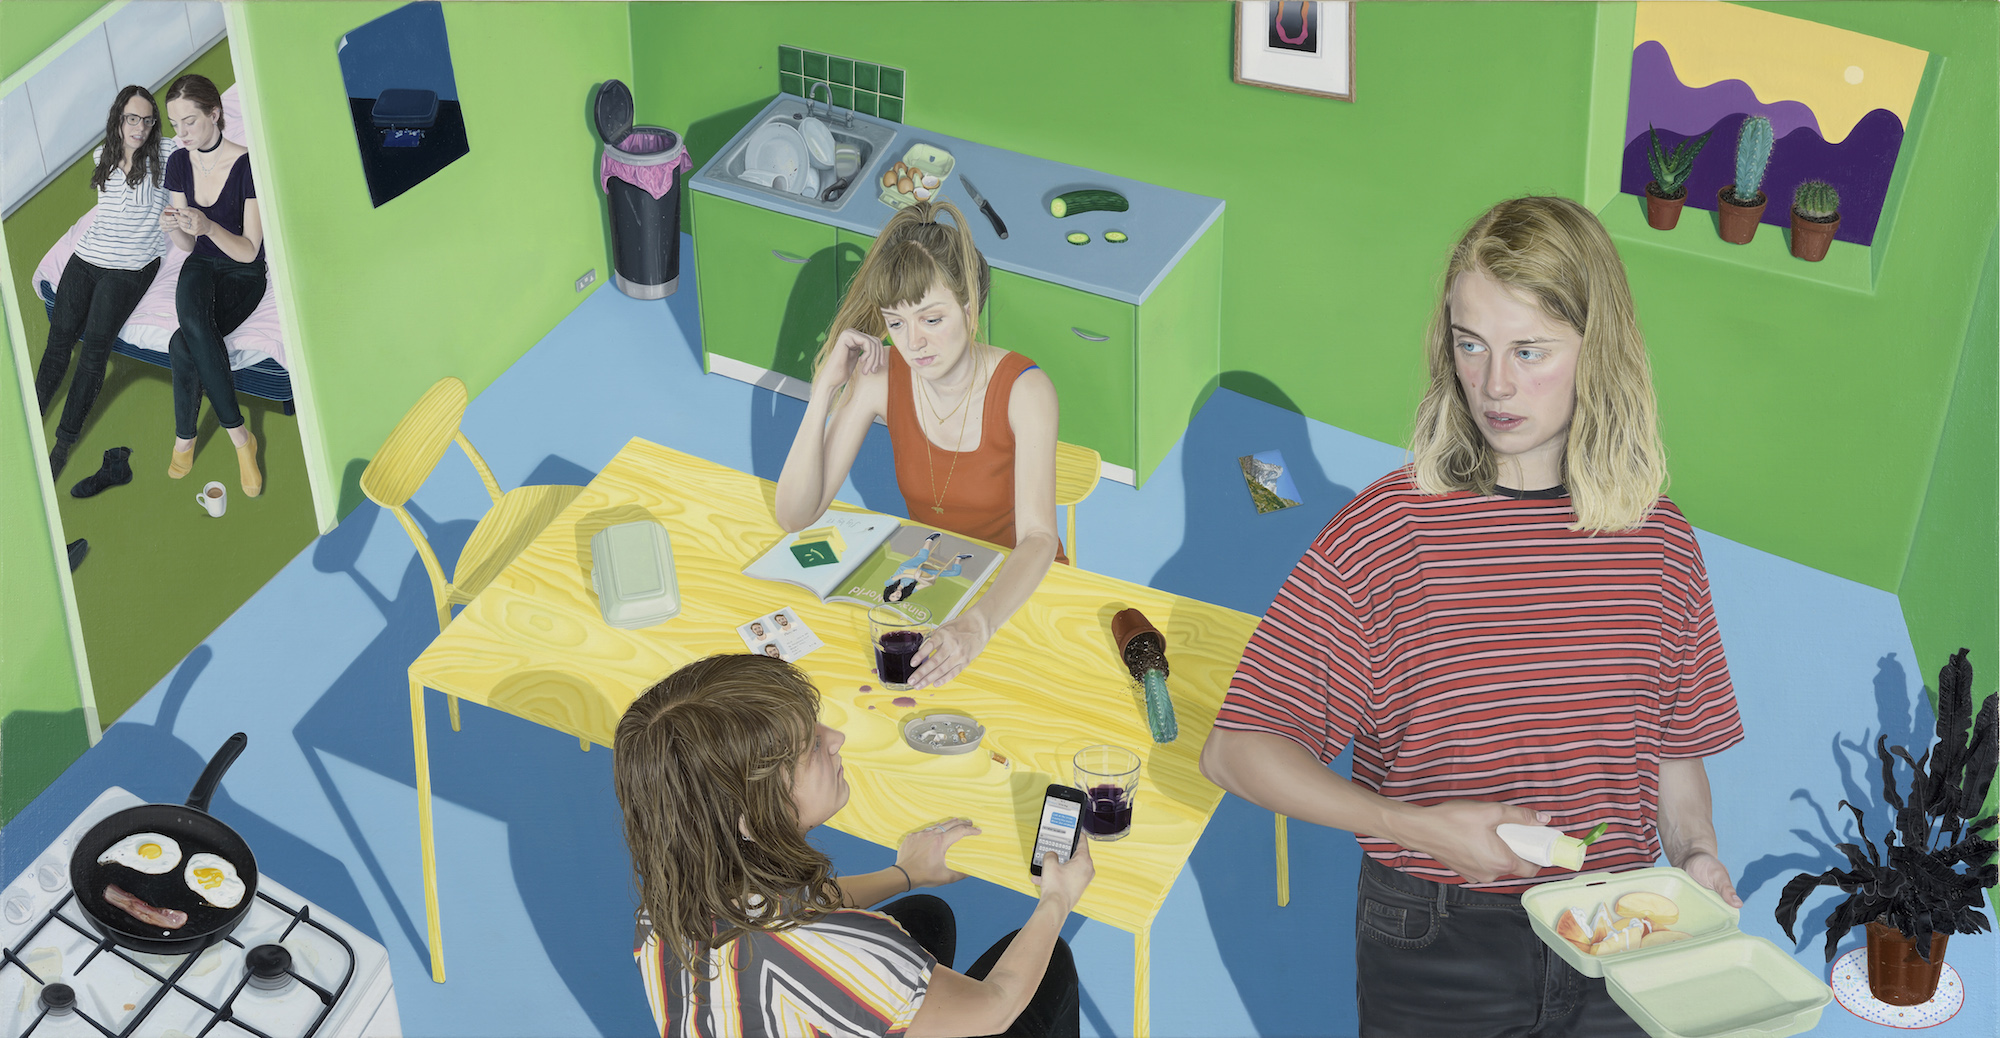 Tristan Pigott's oil painting for Marika Hackman's album, I'm Not Your Man